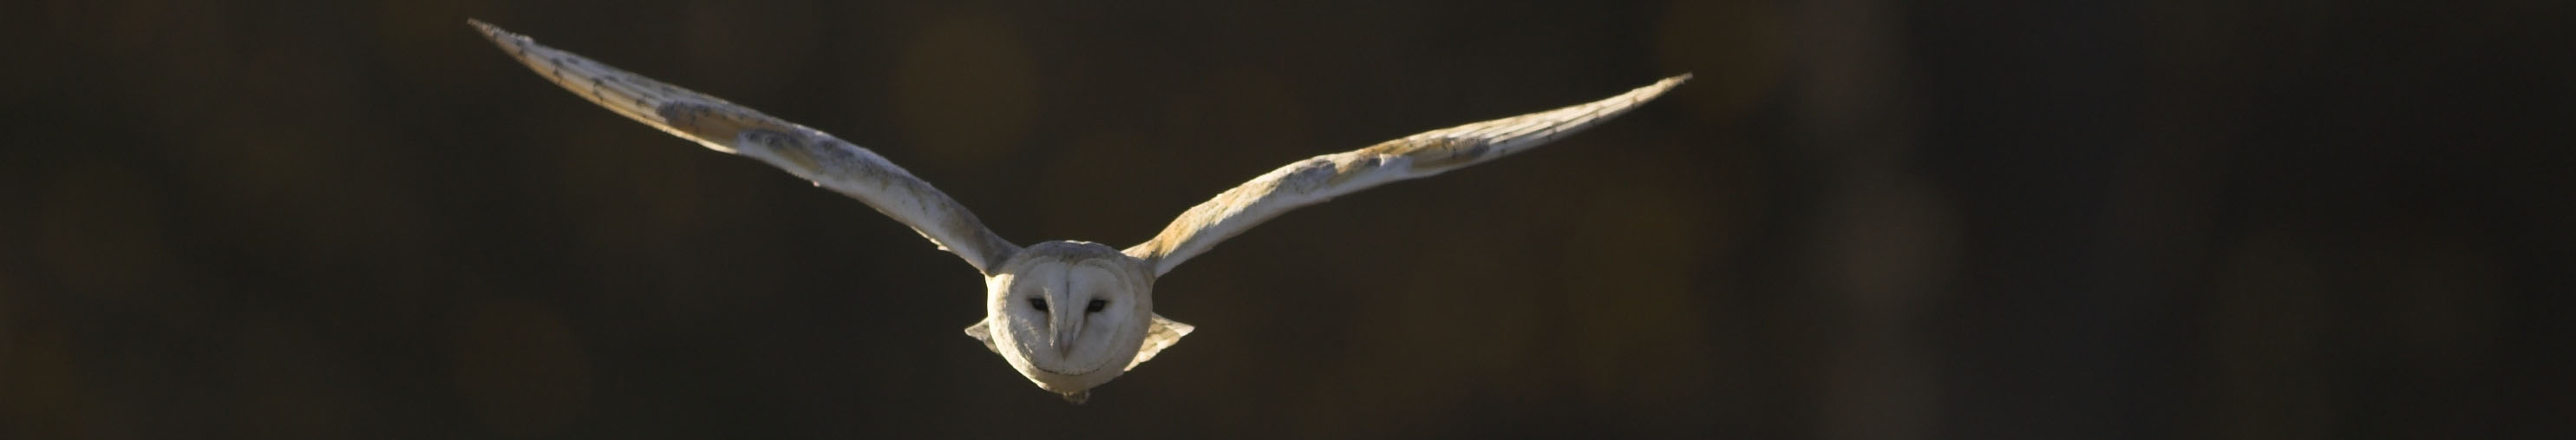 Barn Owl Hunting at Dusk 2